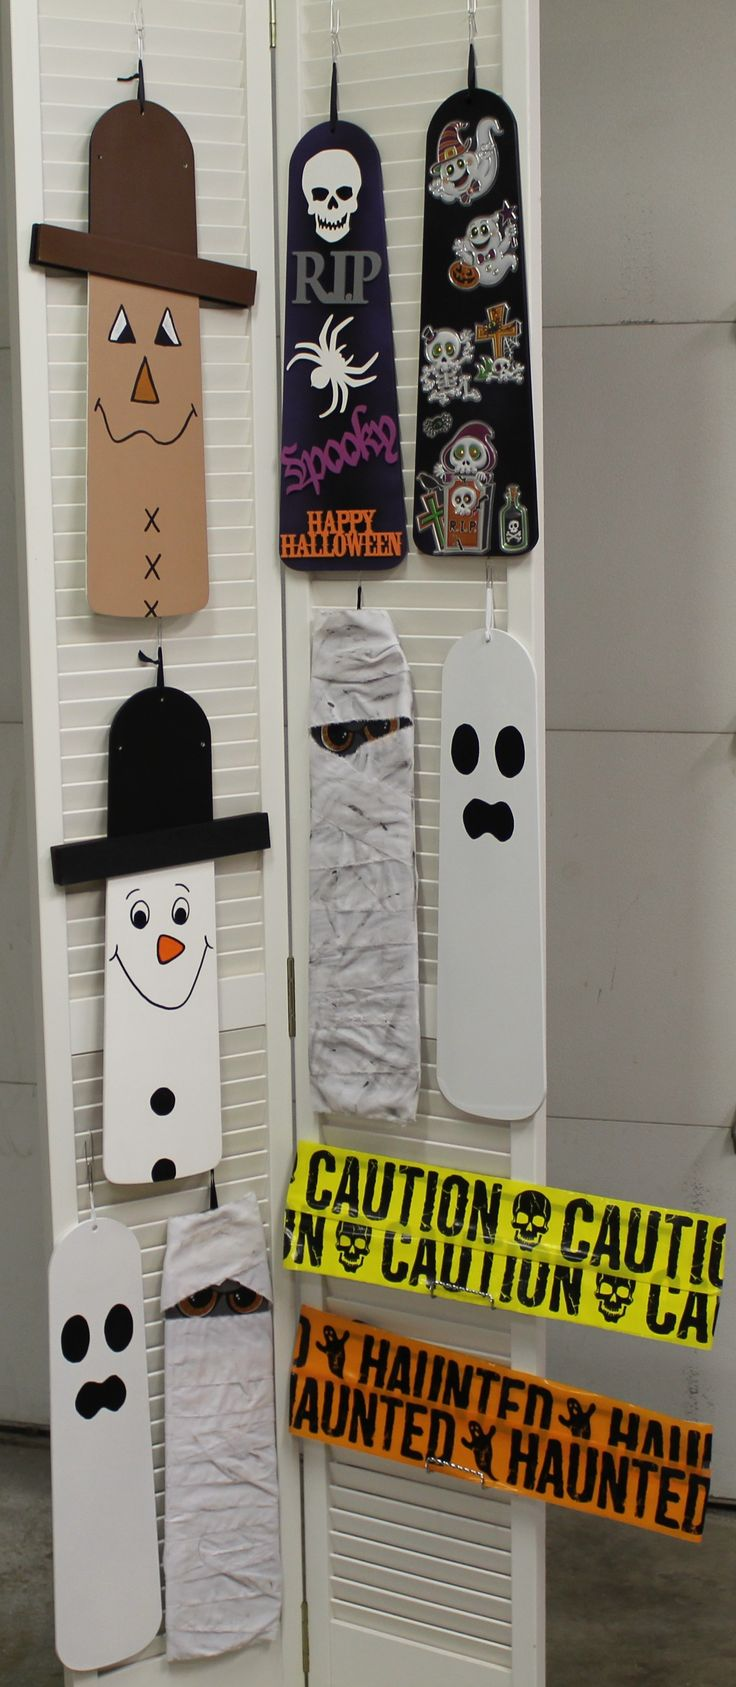 Repurposed ceiling fan blades made into holiday décor. Mummies, ghosts, and reversible scarecrow/snowman décor.